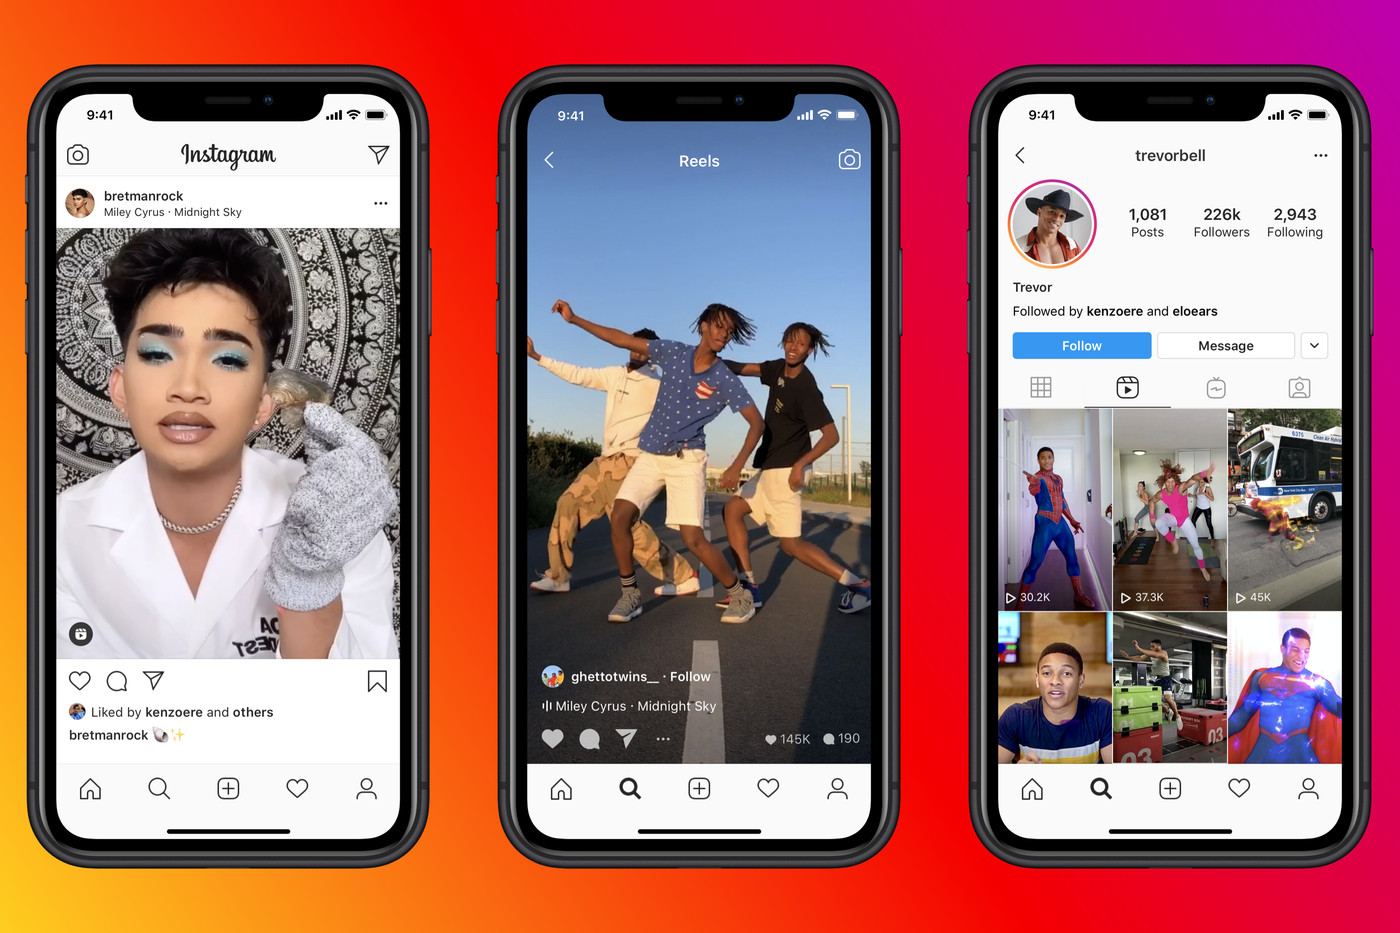 See What You Must Do To Keep Using Instagram Going Forward